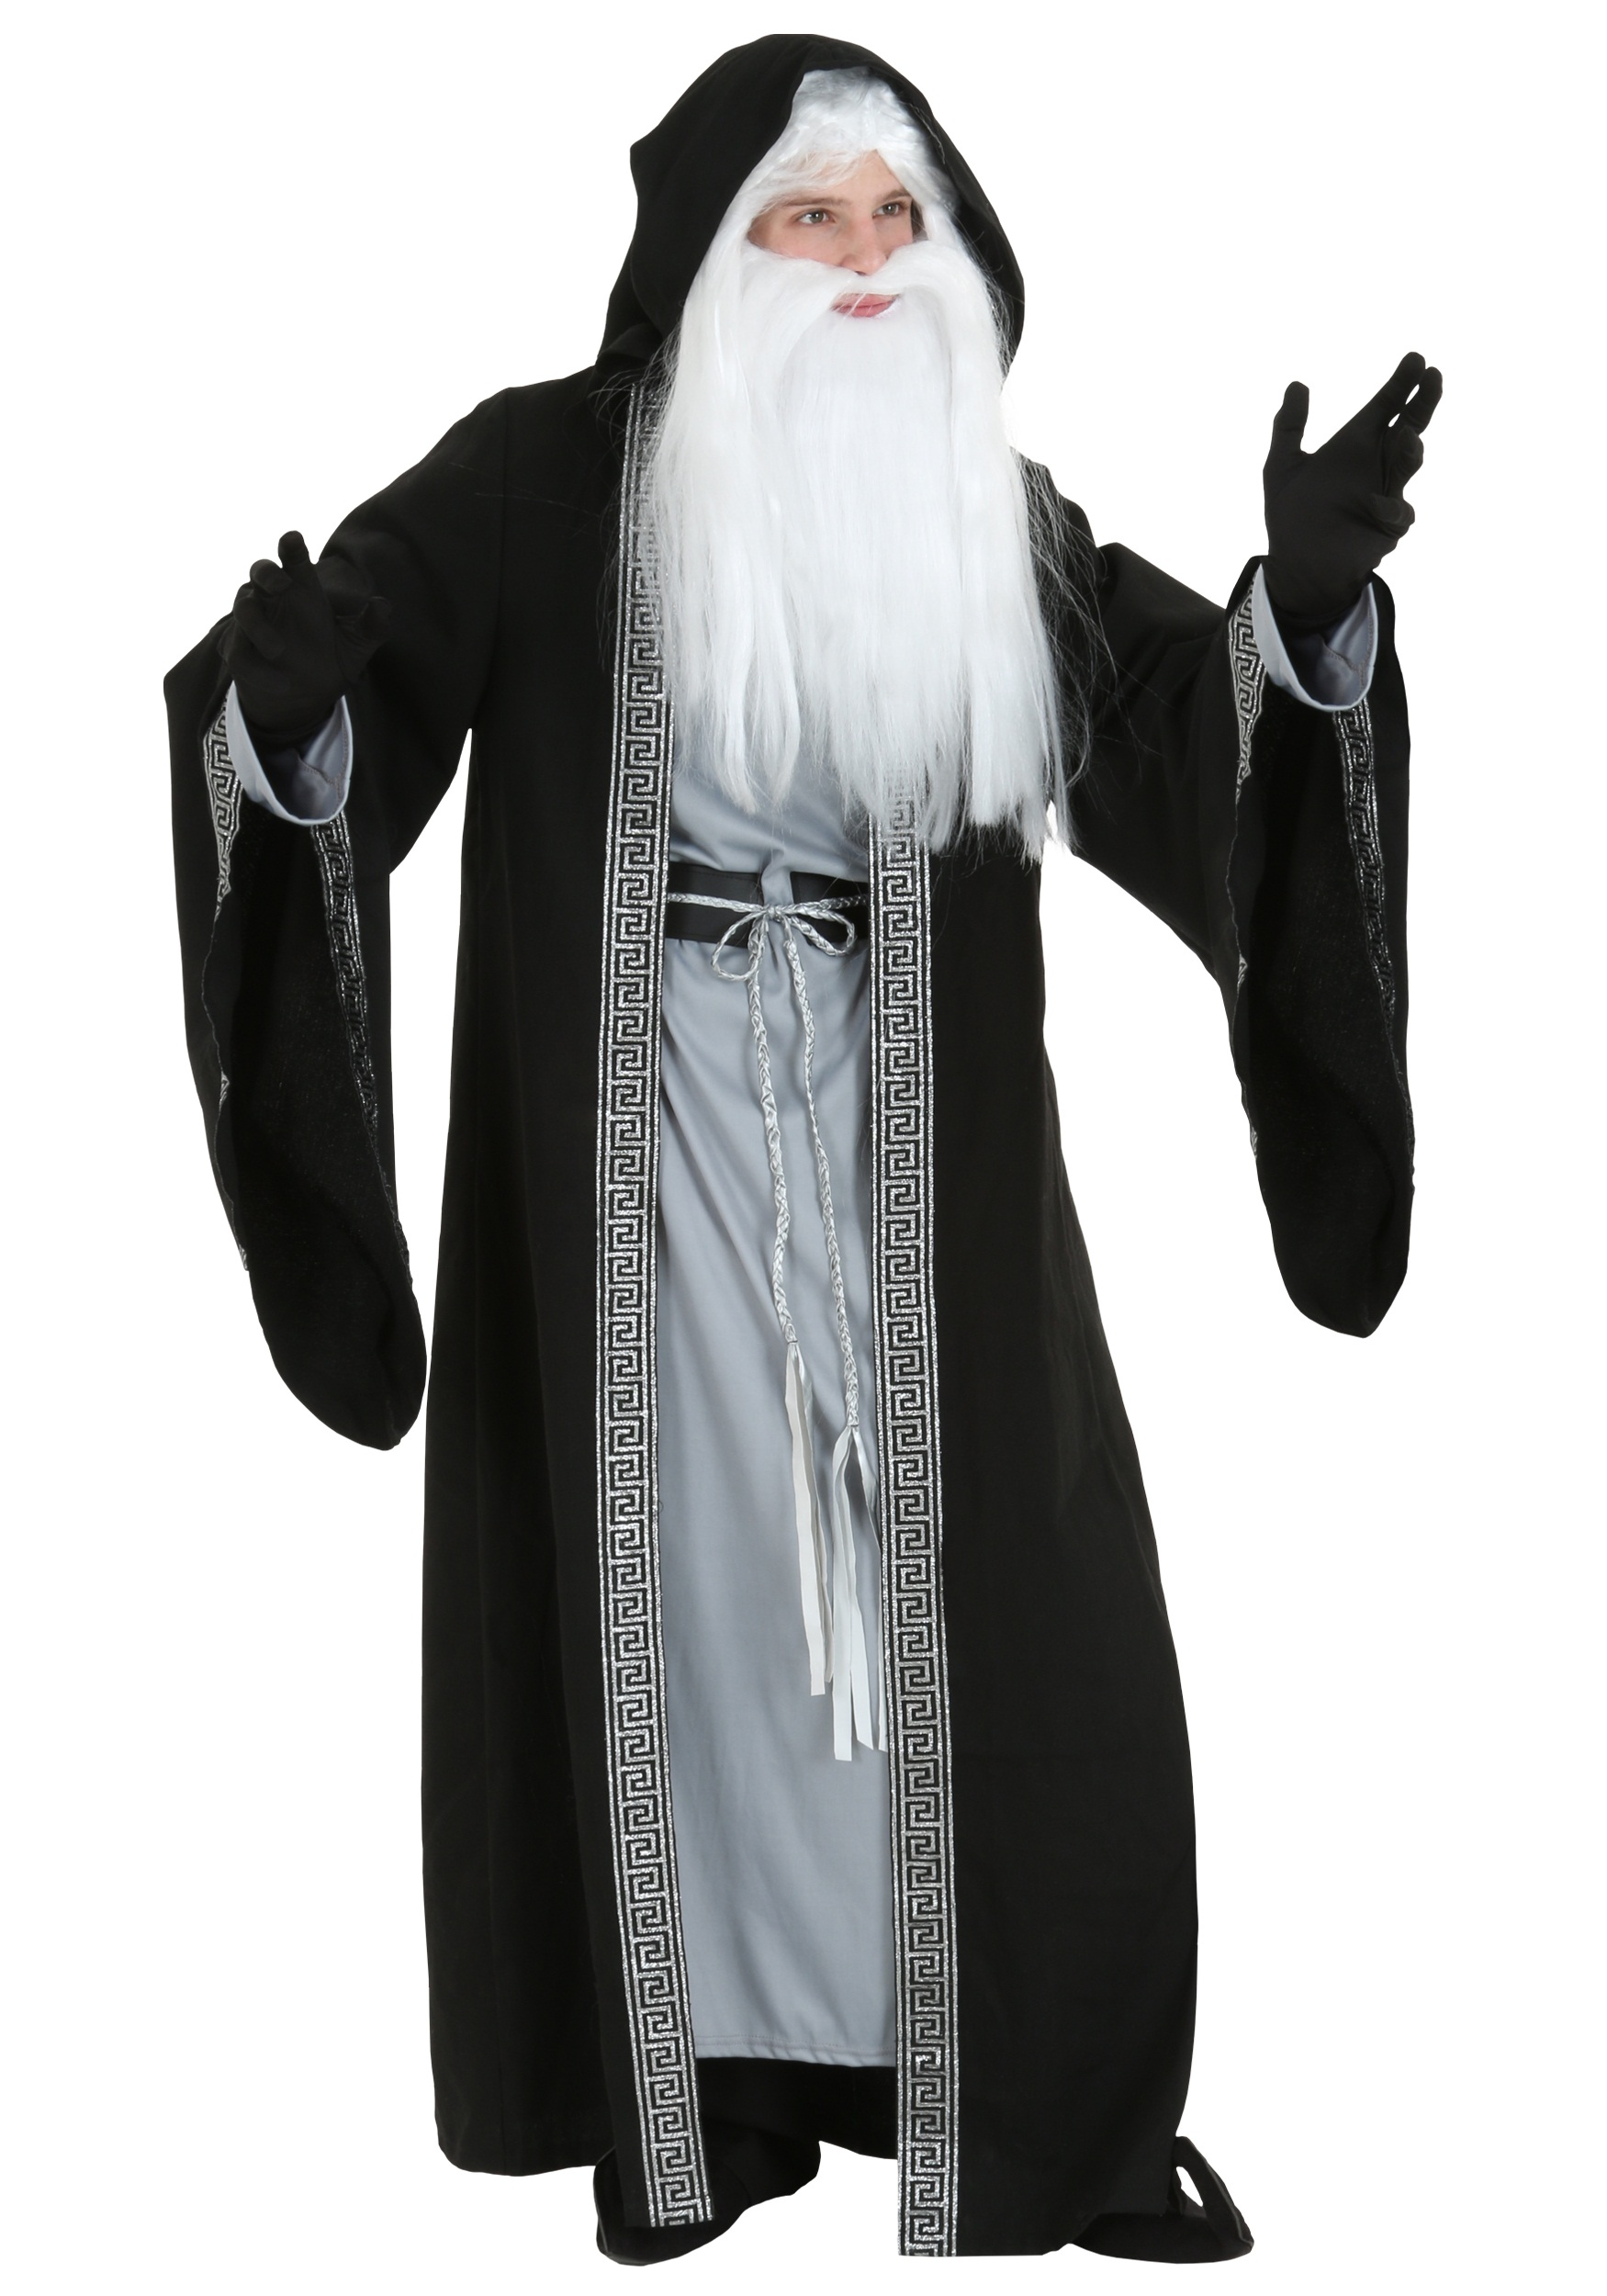 Adult deluxe wizard costume solutioingenieria Choice Image